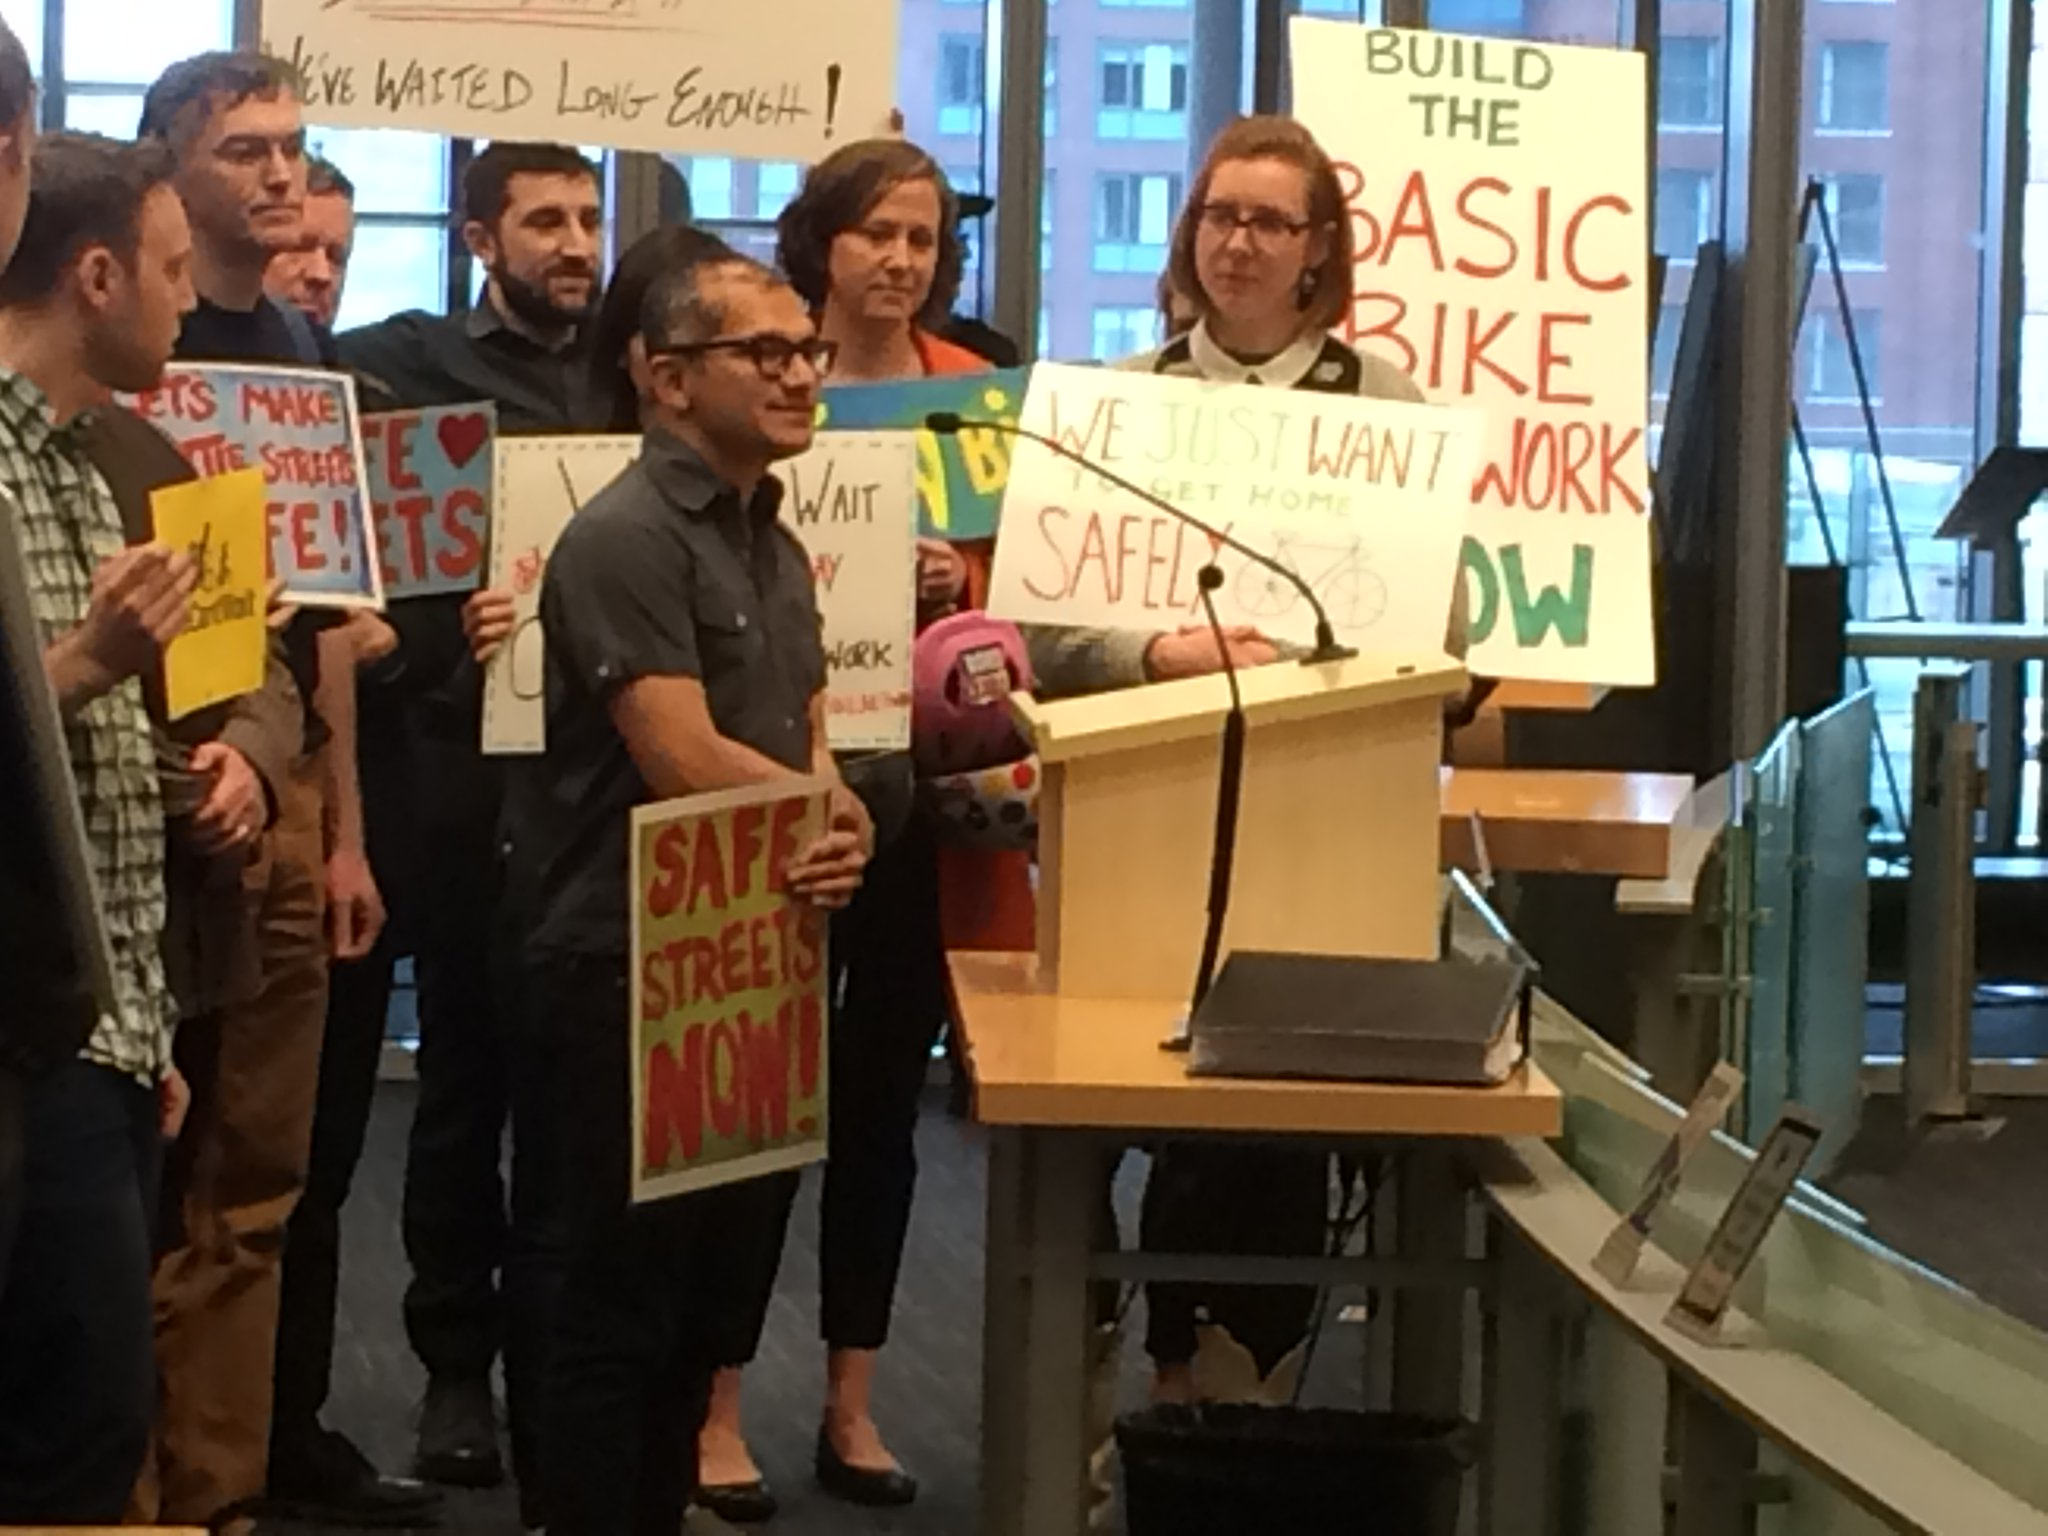 A group of people holding signs in support of the Basic Bike Network gathered around a speaker at a microphone.